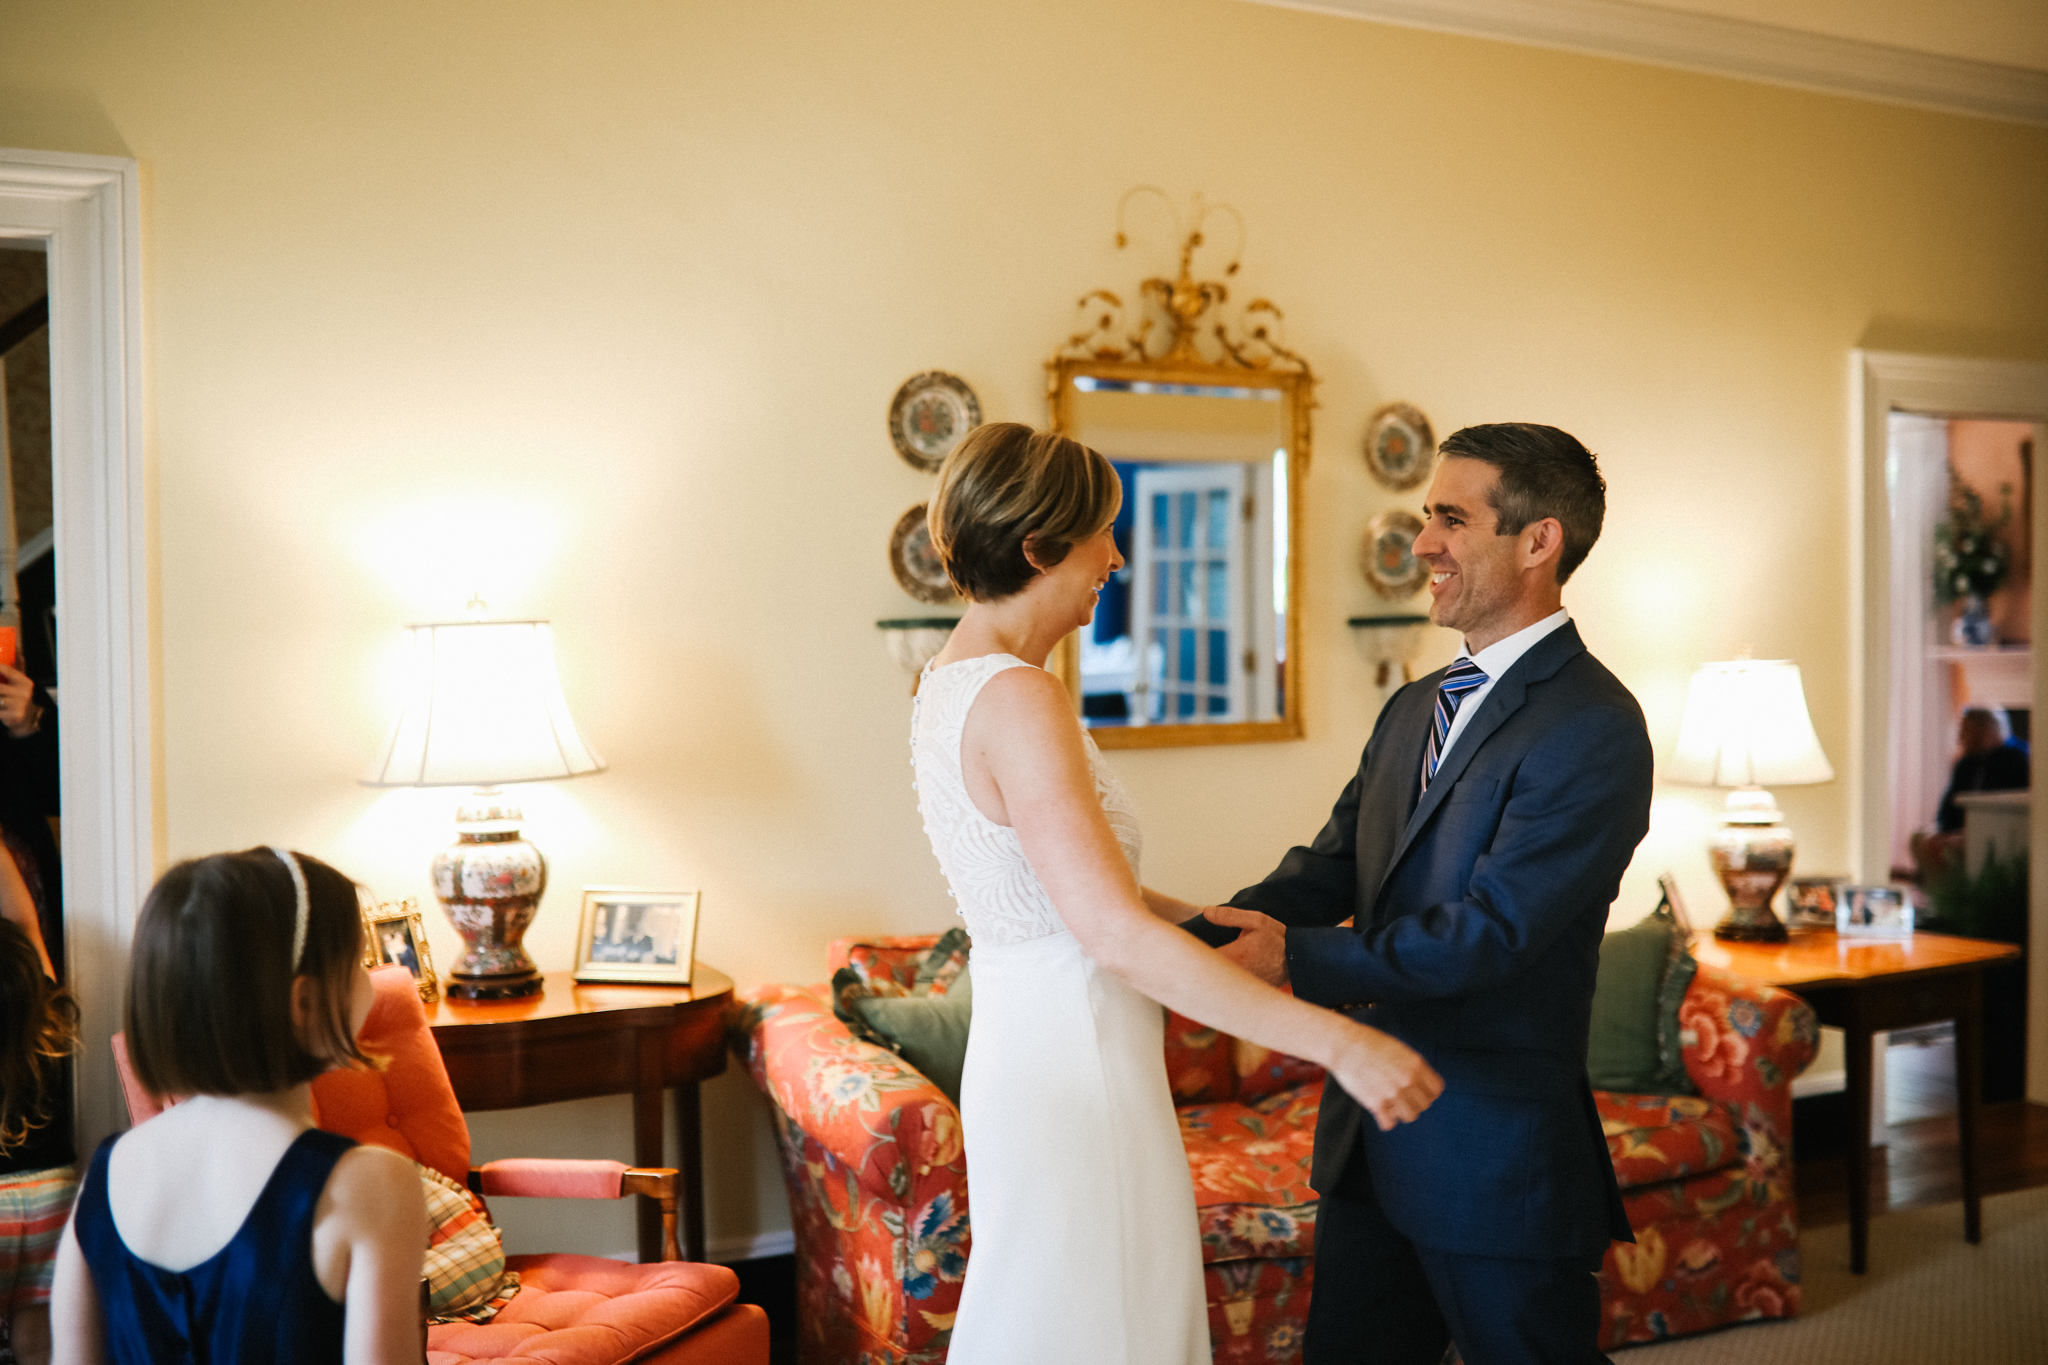 cook_wedding_richmond_virginia_rebecca_burt_photography-7.jpg